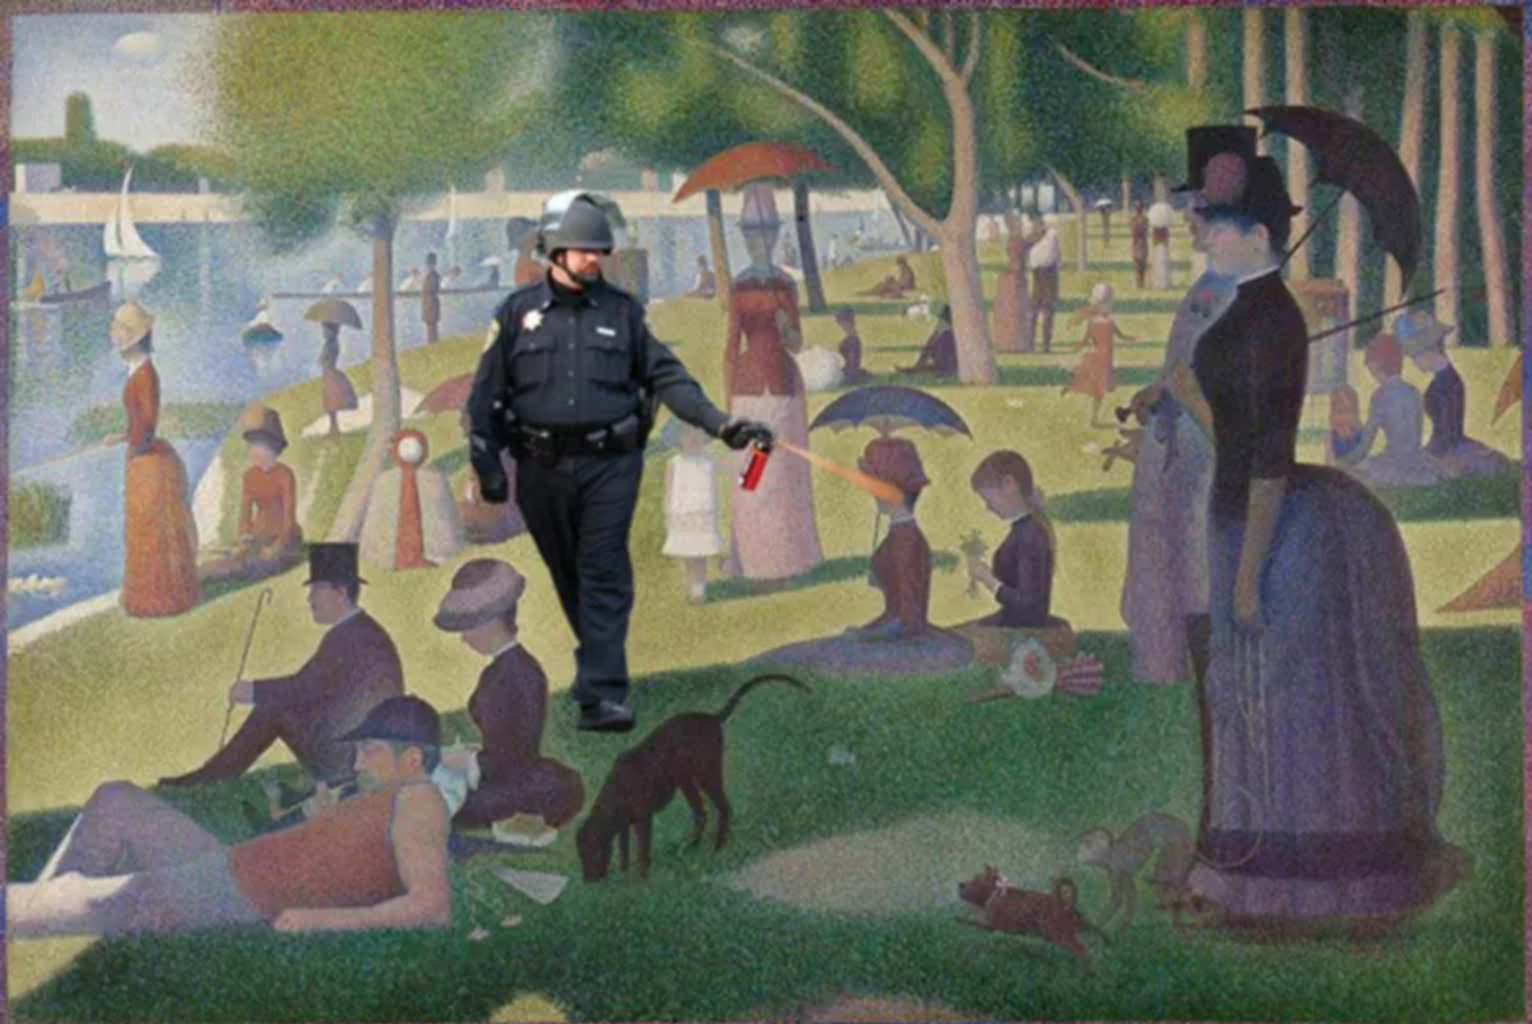 Pepper-spray-cop-meme